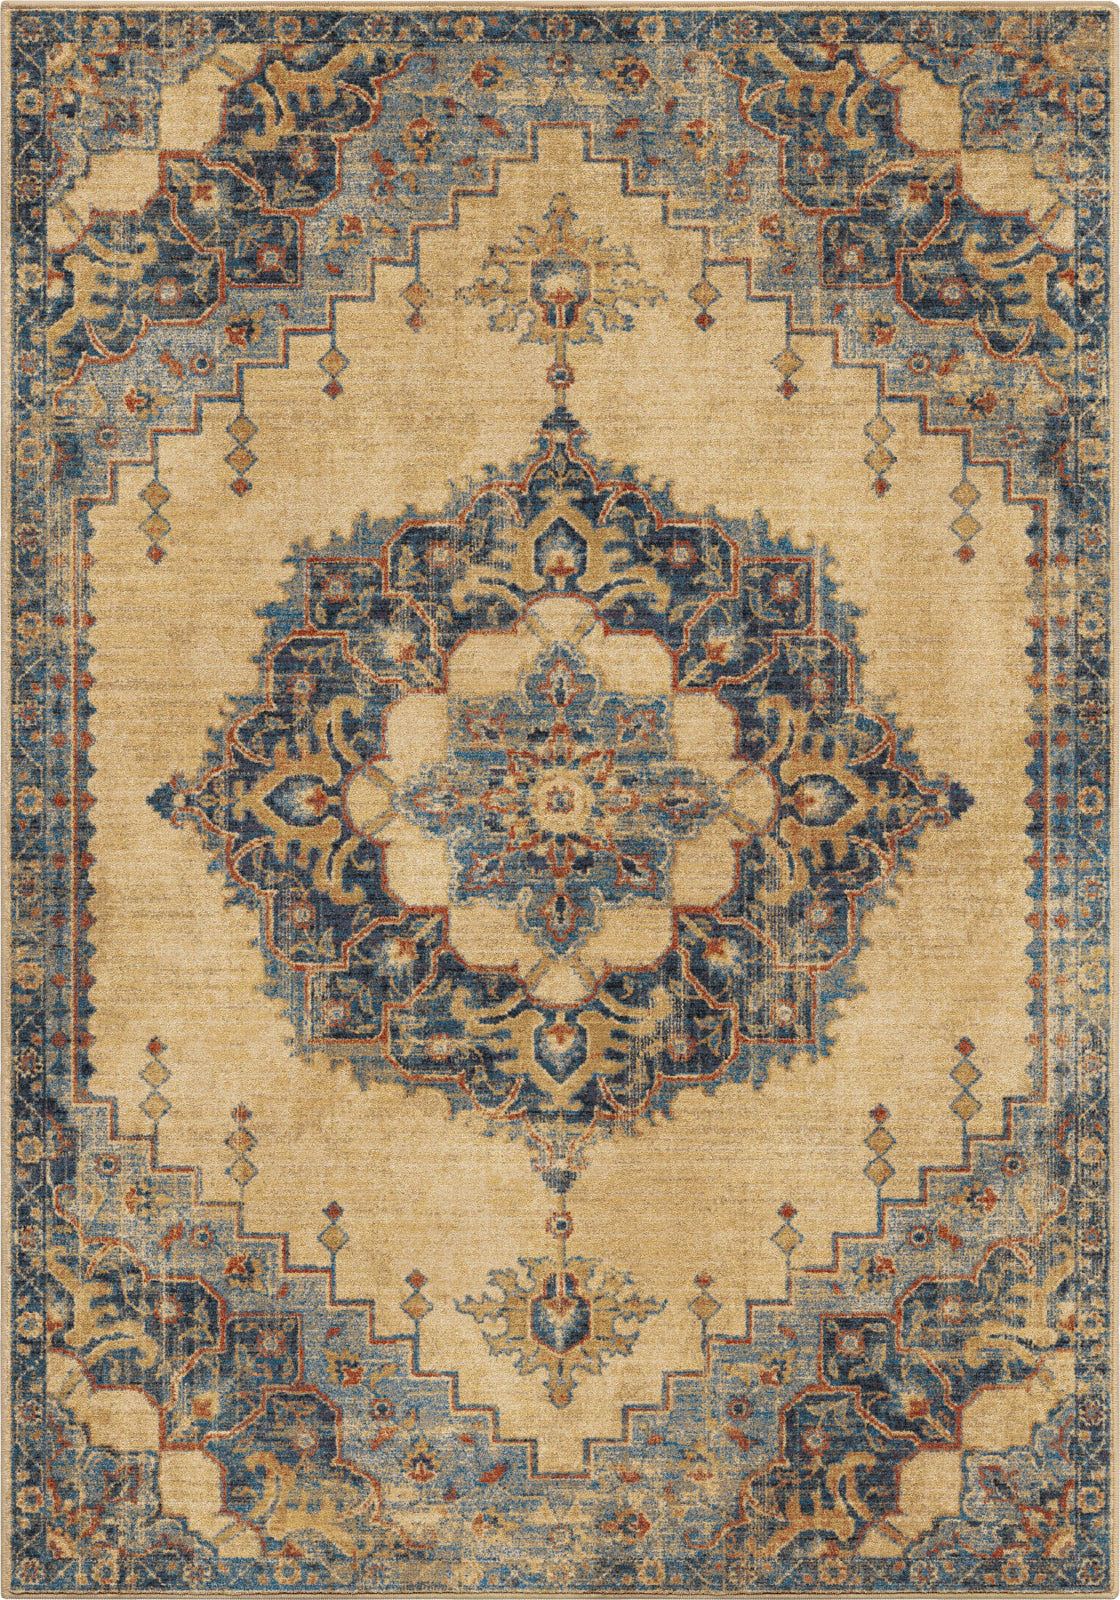 Orian Rugs Alexandria Hamton Court Pale Blue Area Rug by Palmetto Living main image